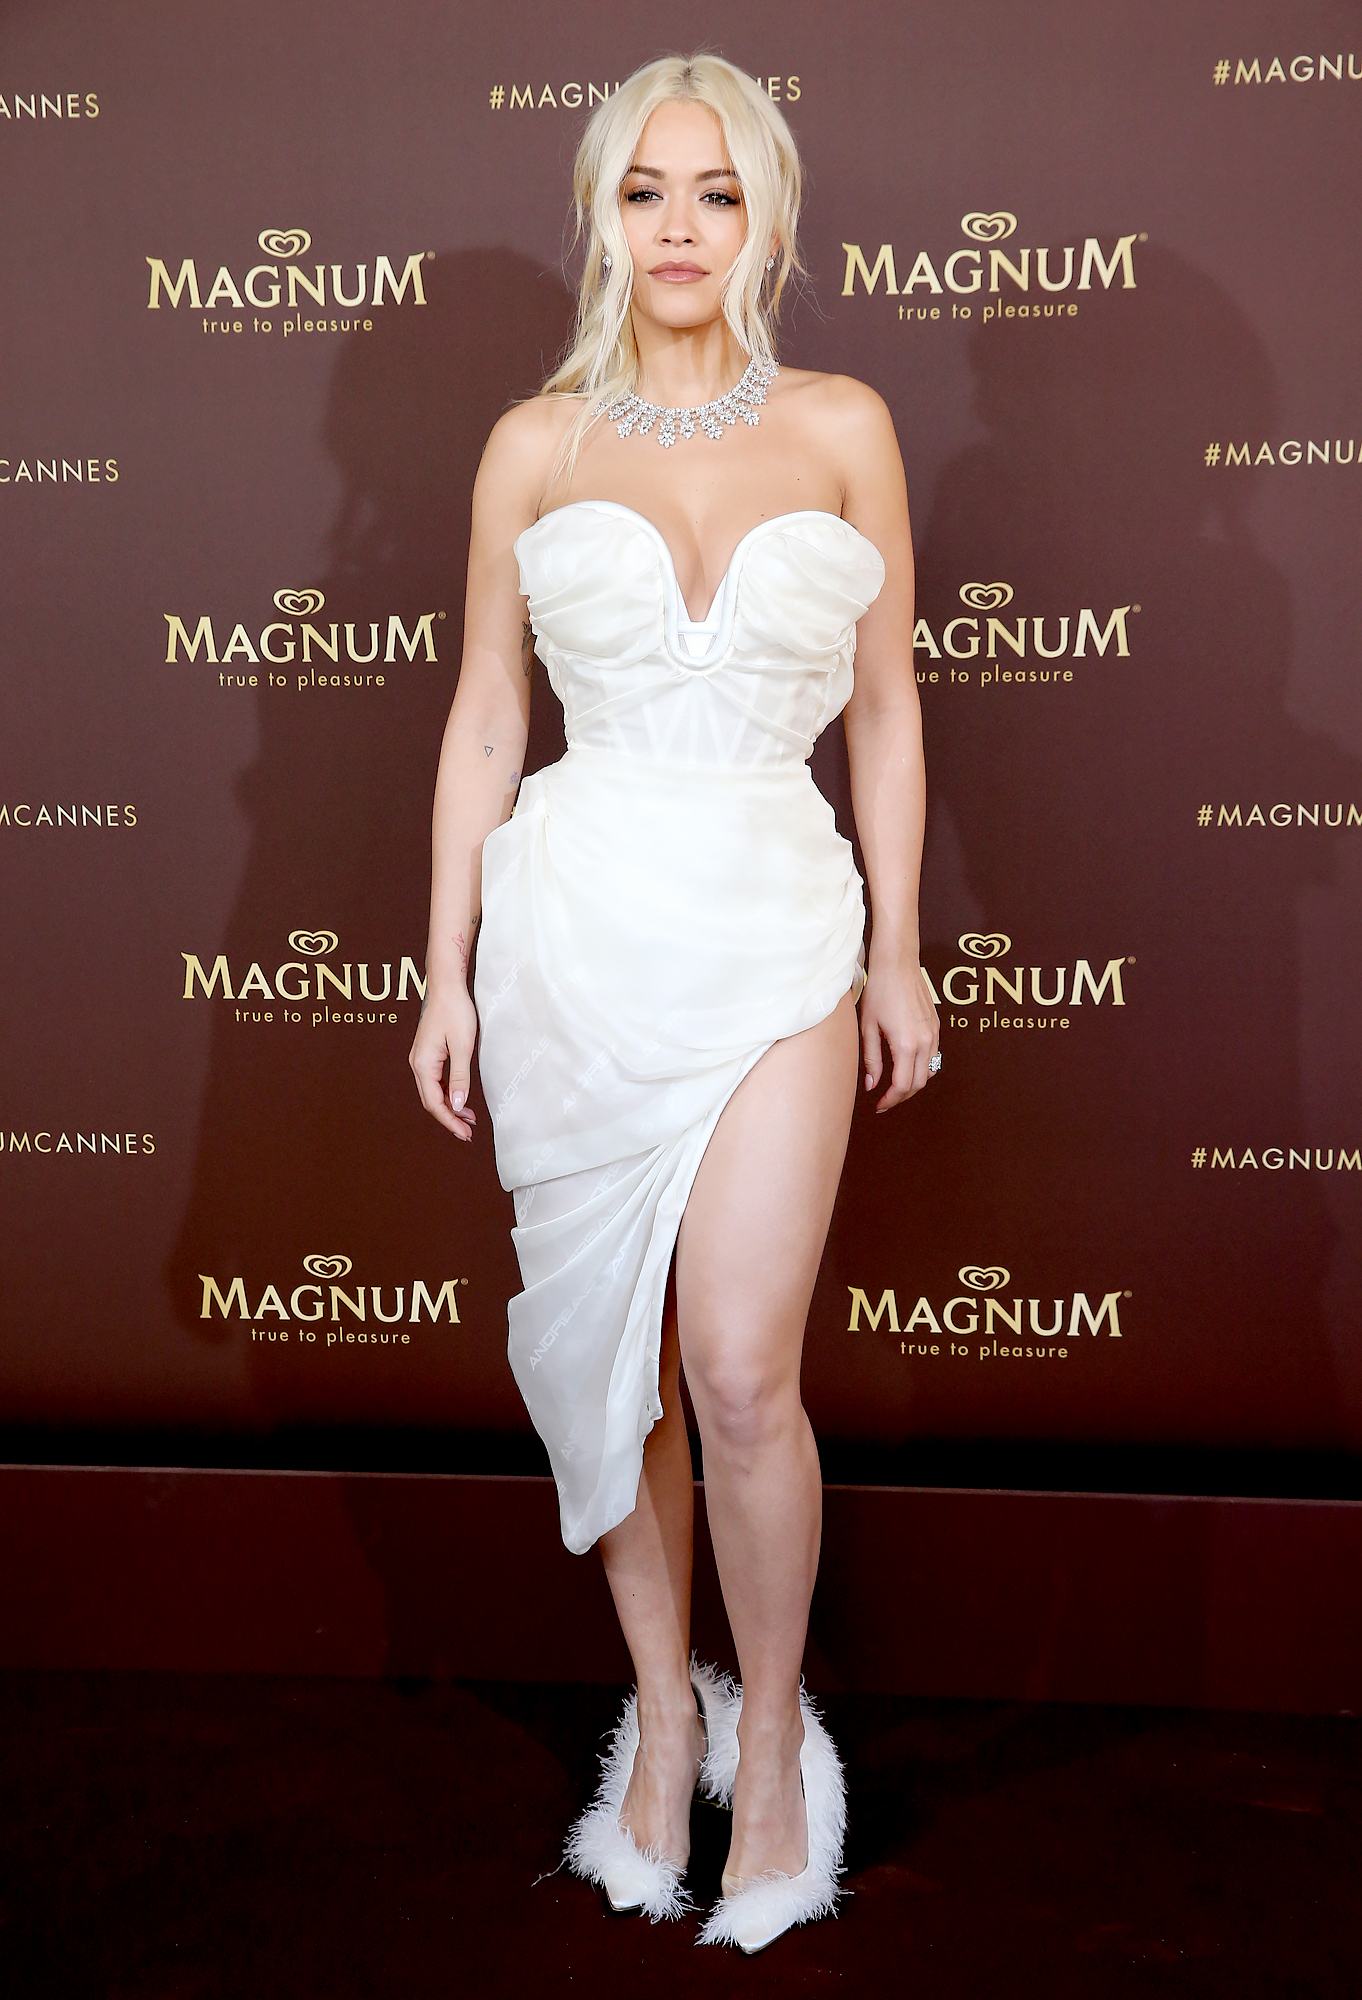 Rita-Ora-Cannes-Festival - The only thing hotter than the songstress' bustier-inspired minidress at the RAGNUM x Rita Ora event on Thursday, May 16? Her feathery pumps.